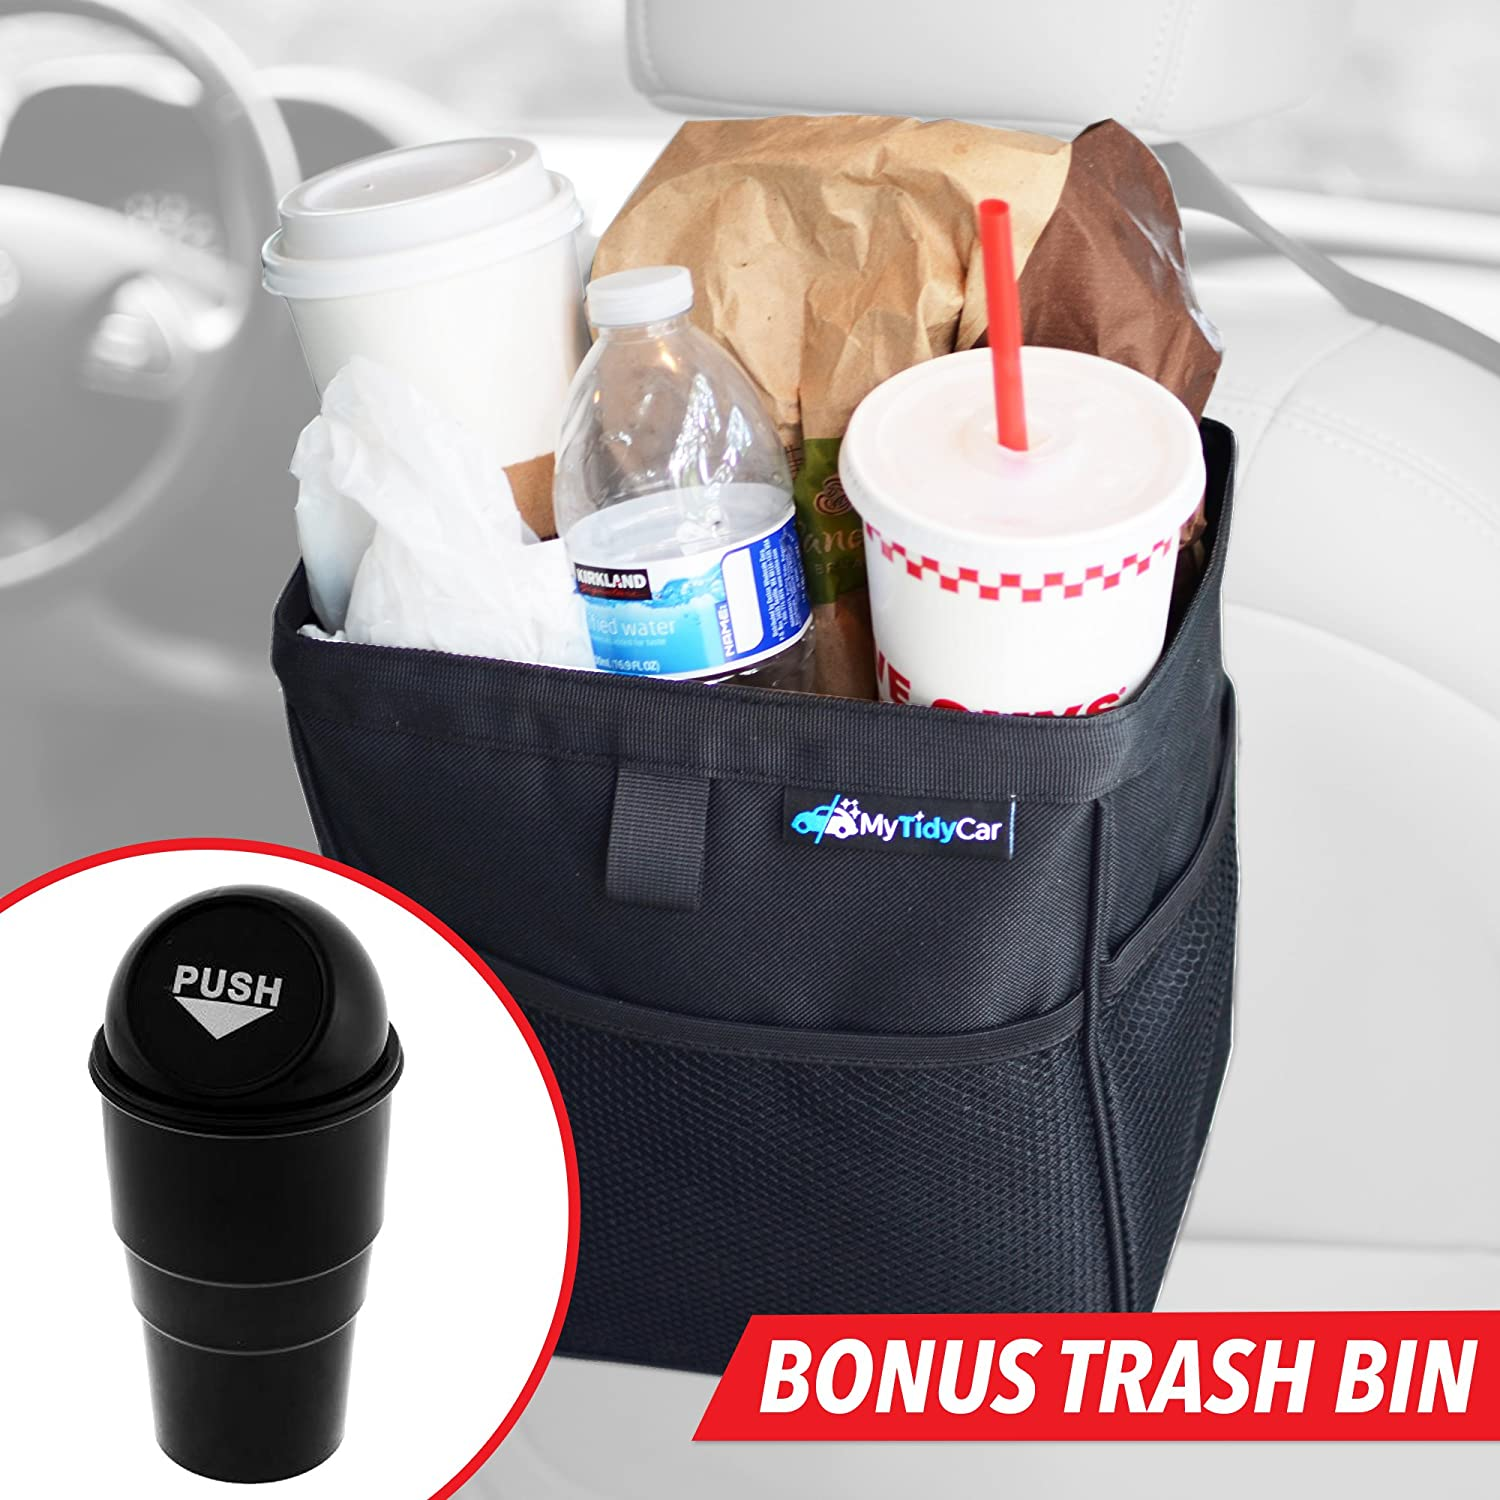 Portable Waste Container with Lid and Waterproof Lining Hanging Wastebasket /& Auto Garbage Bag MyTidyCar Car Trash Can Large 3 Gallon Capacity